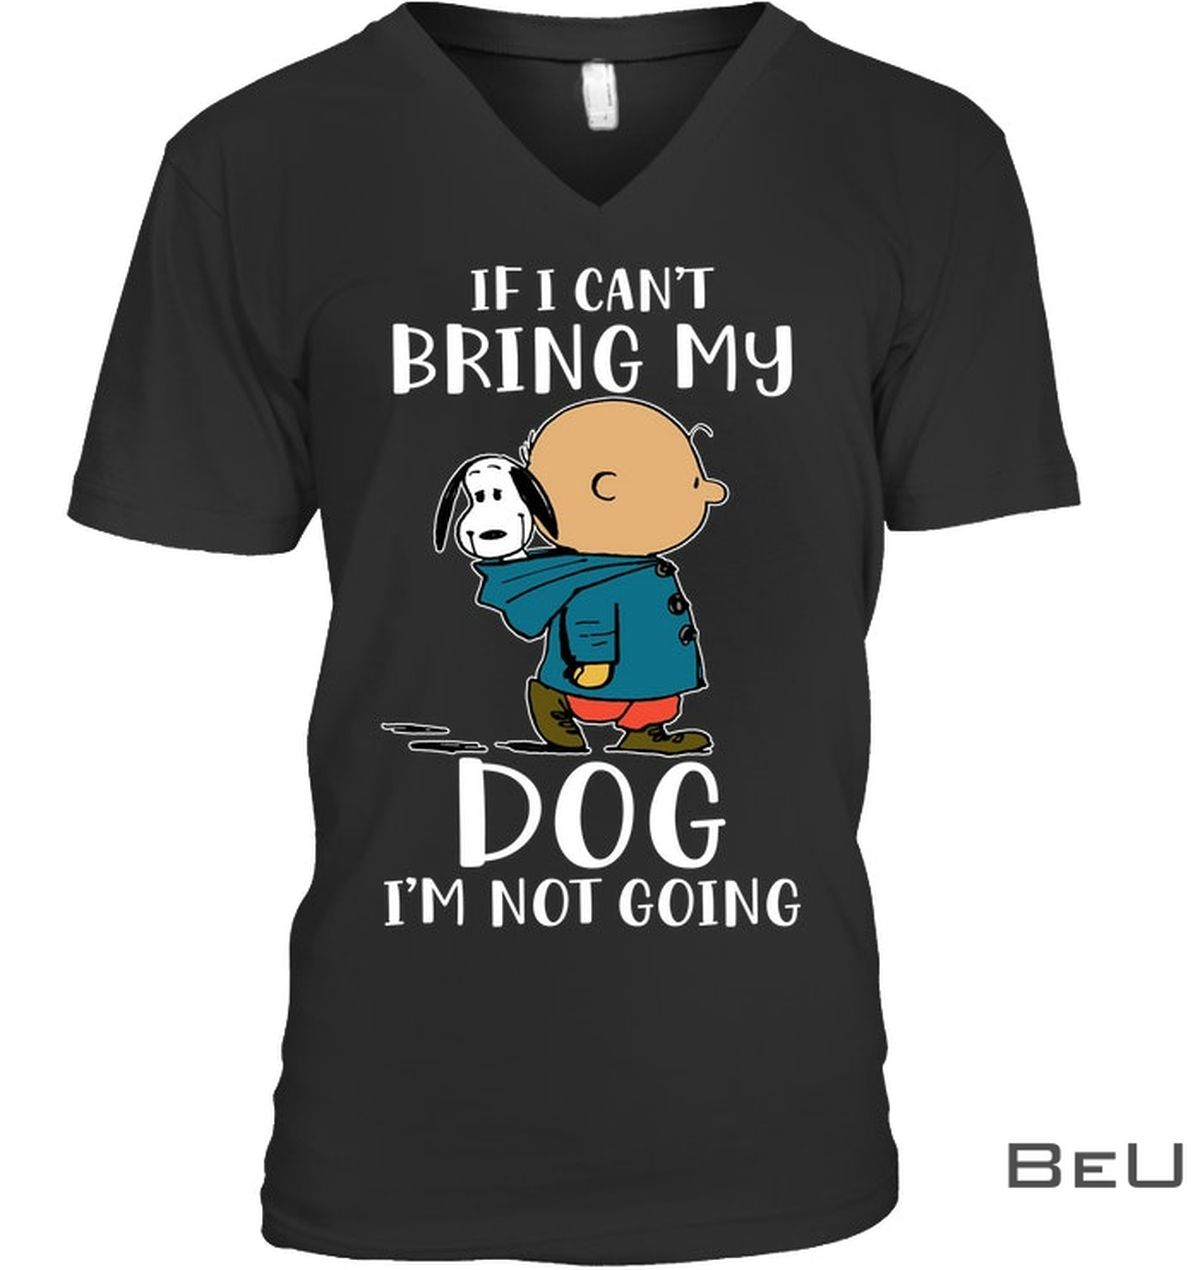 Snoopy If I Can't Bring My Dog I'm Not Going Shirtx